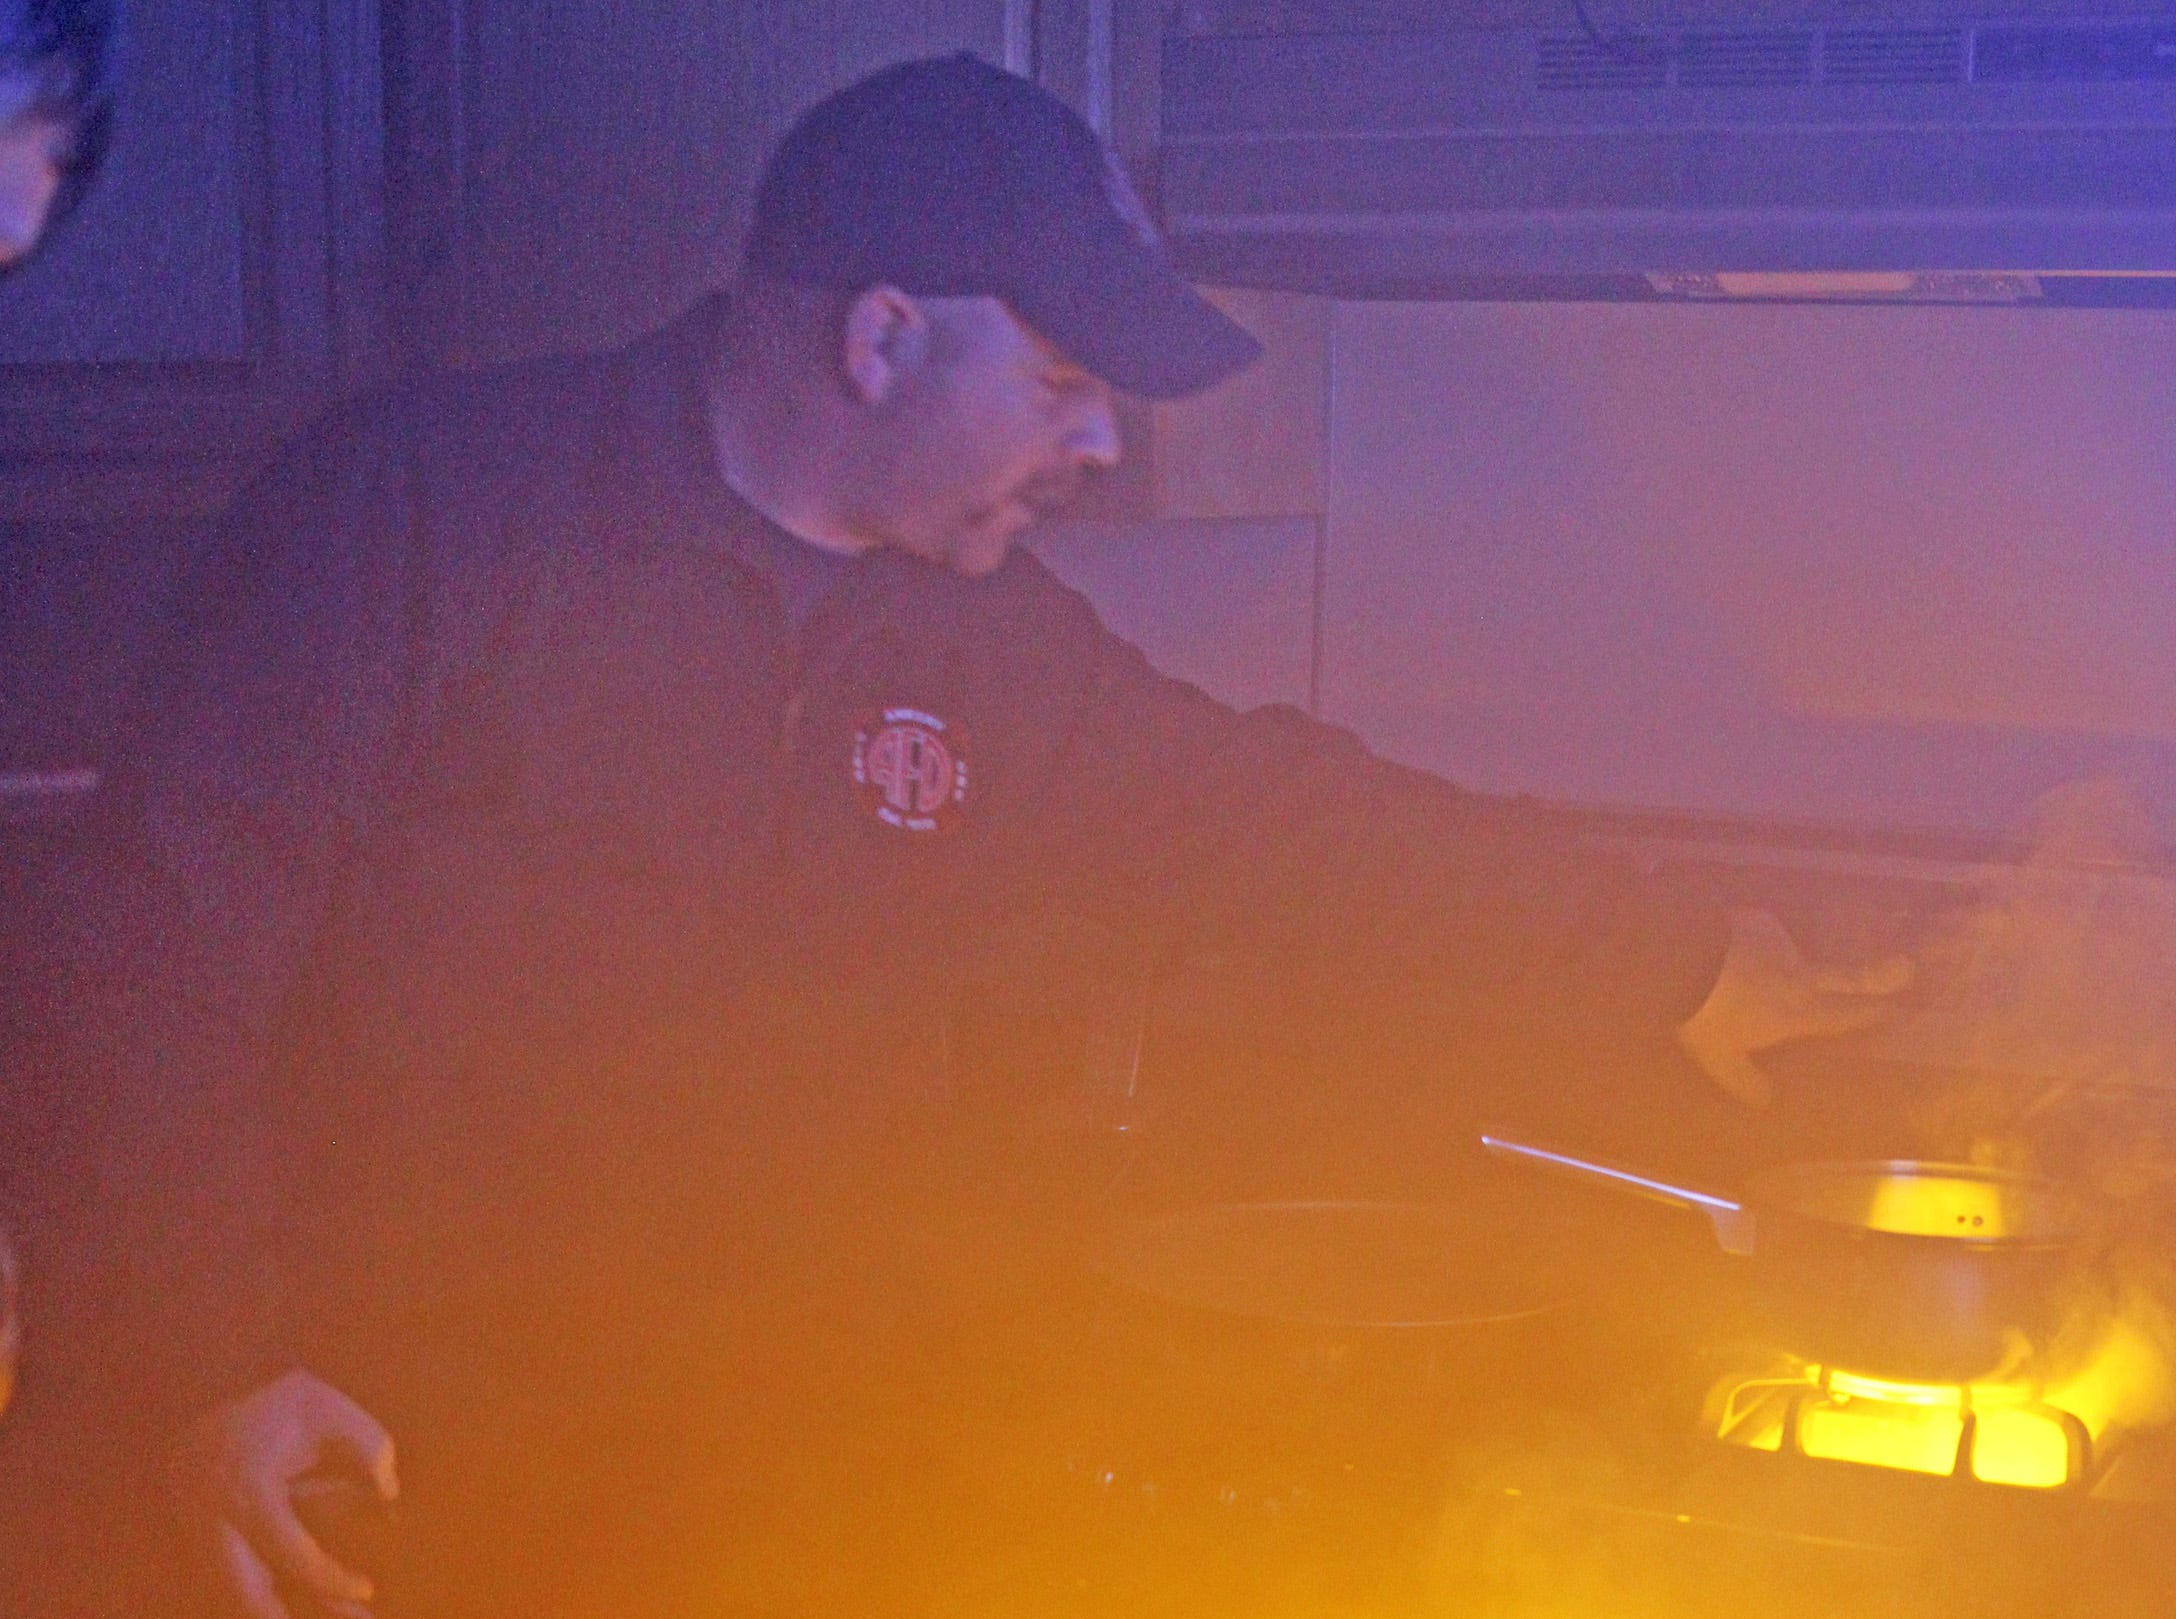 Zach Clear of the Ankeny Fire Dept. provides safety tips while cooking in the kitchen in the smoke house during the Ankeny Fire Department's Fire Prevention Week Open House on Wednesday, Oct. 10, 2018 at Fire Station #1, 120 N.W. Ash Dr. in Ankeny.